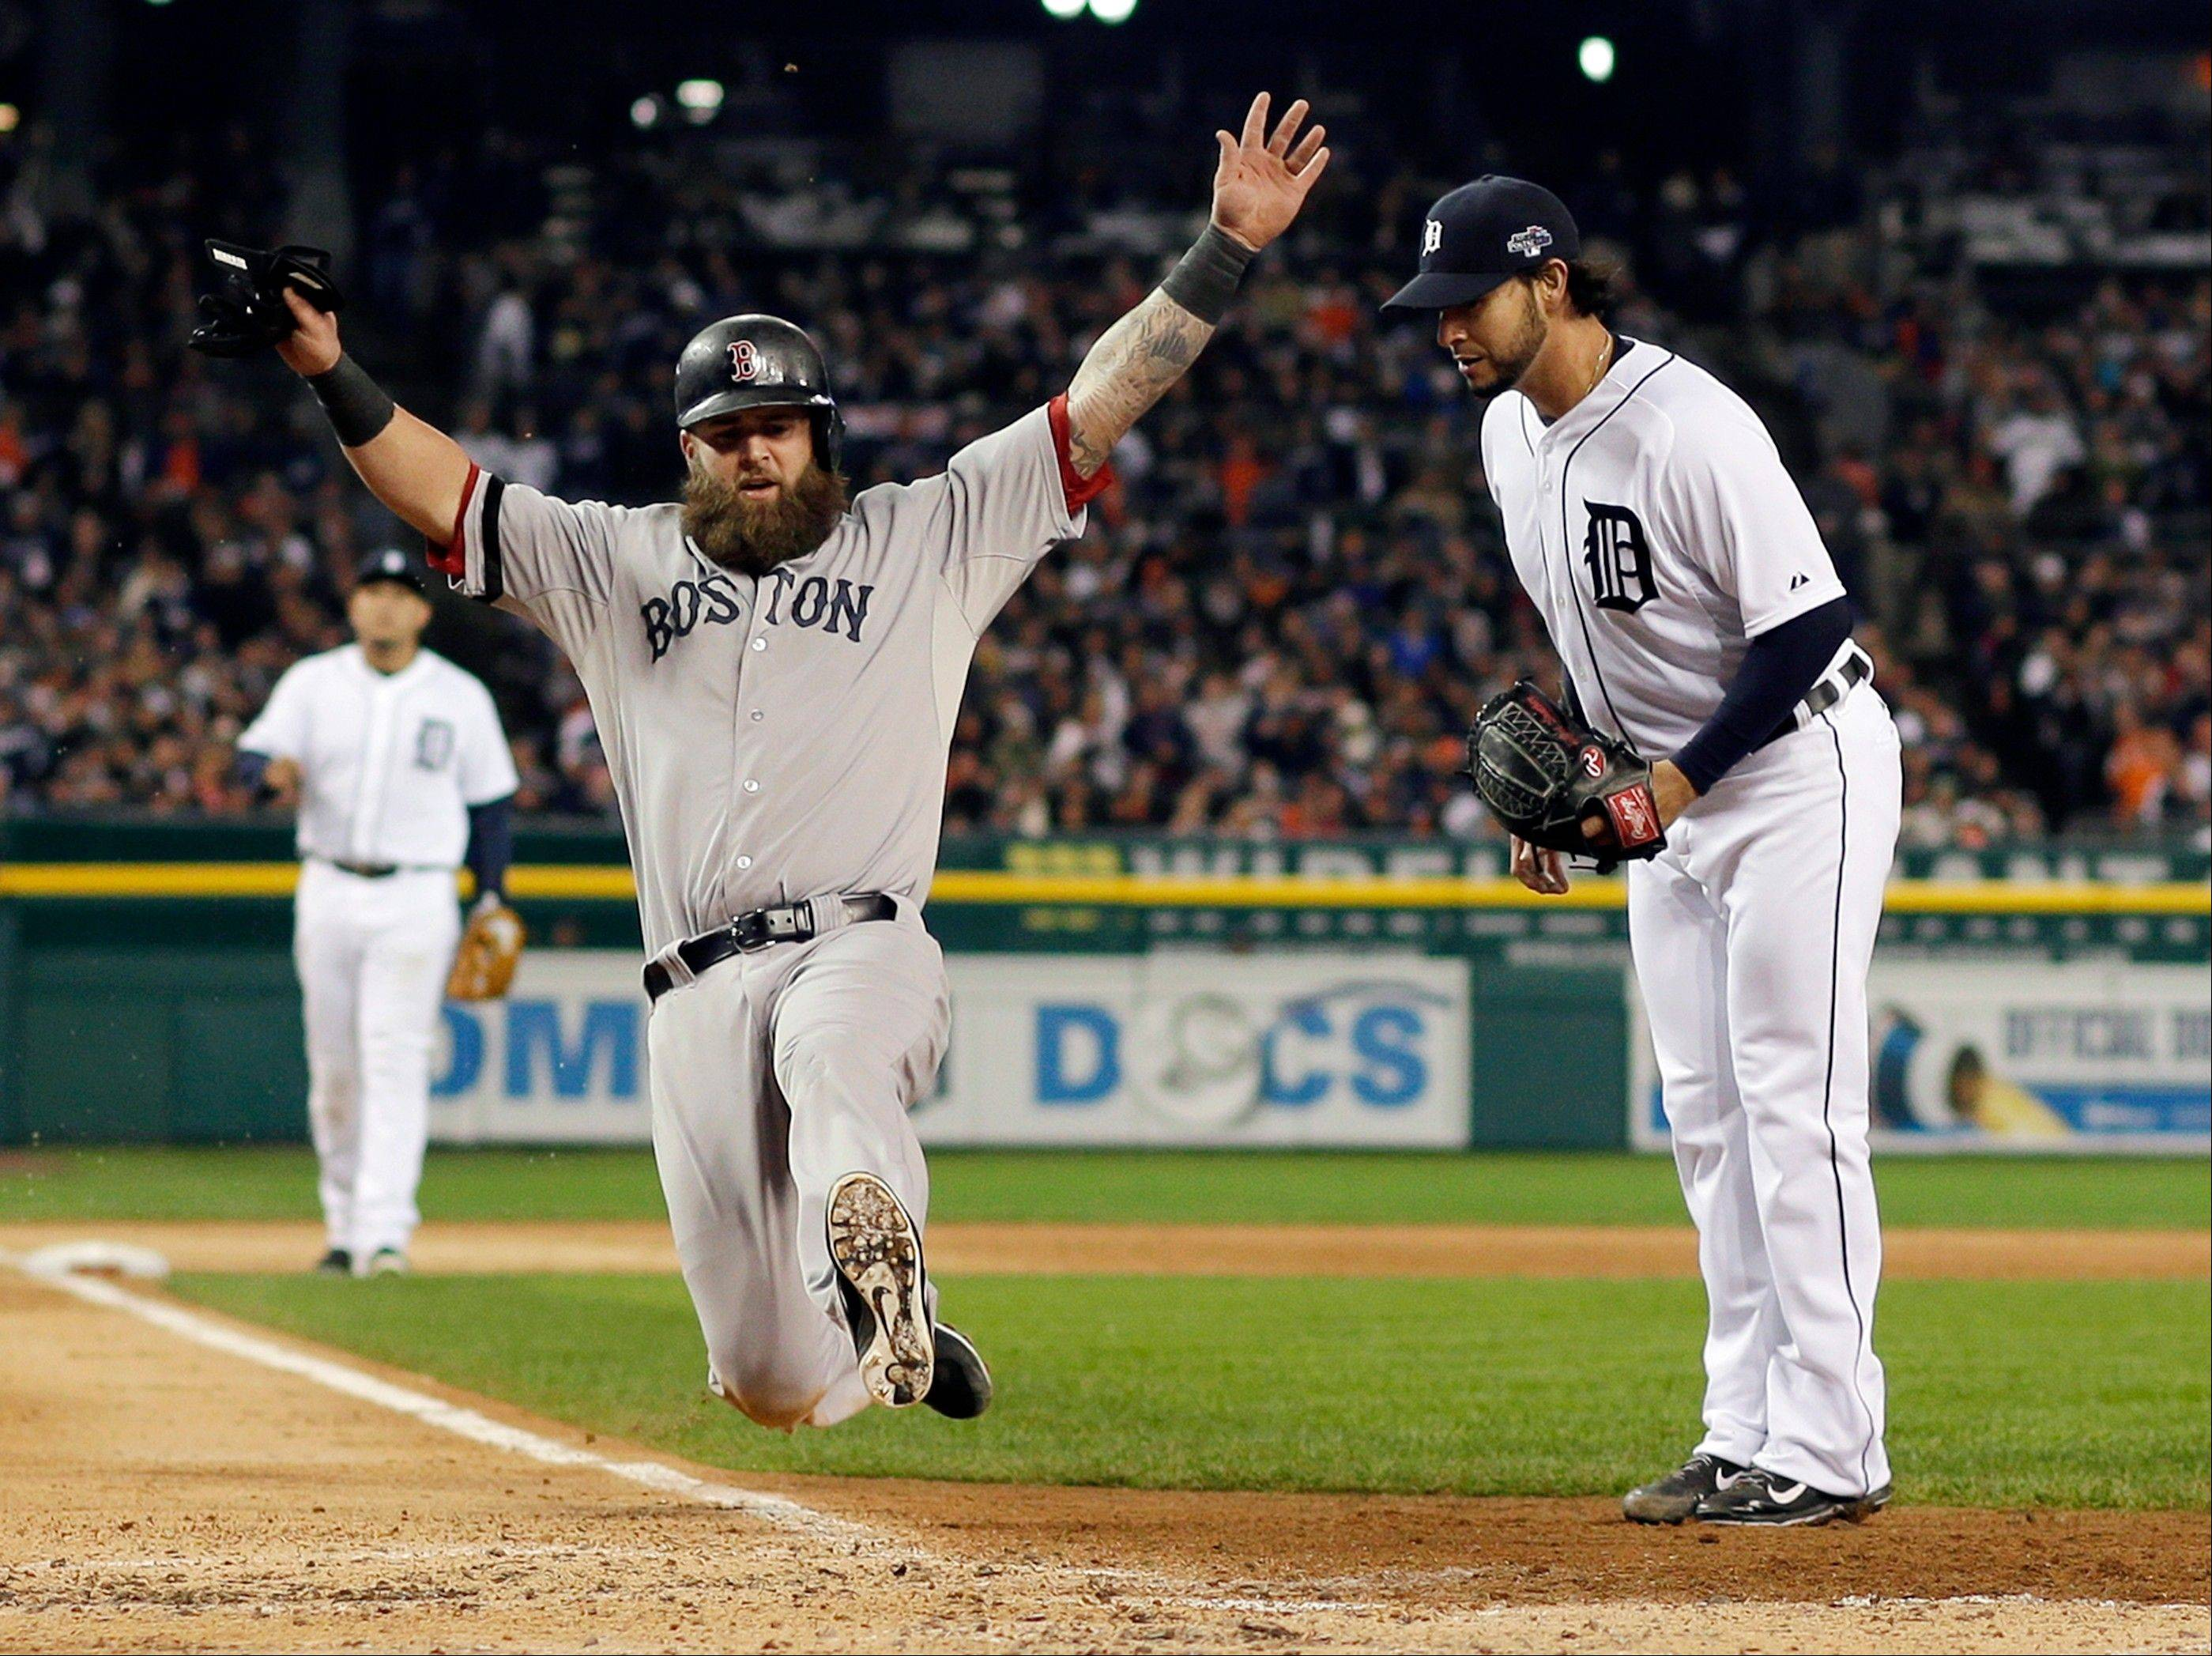 Boston�s Mike Napoli scores on a wild pitch by Detroit�s Anibal Sanchez during Game 5 of the American League Championship Series.